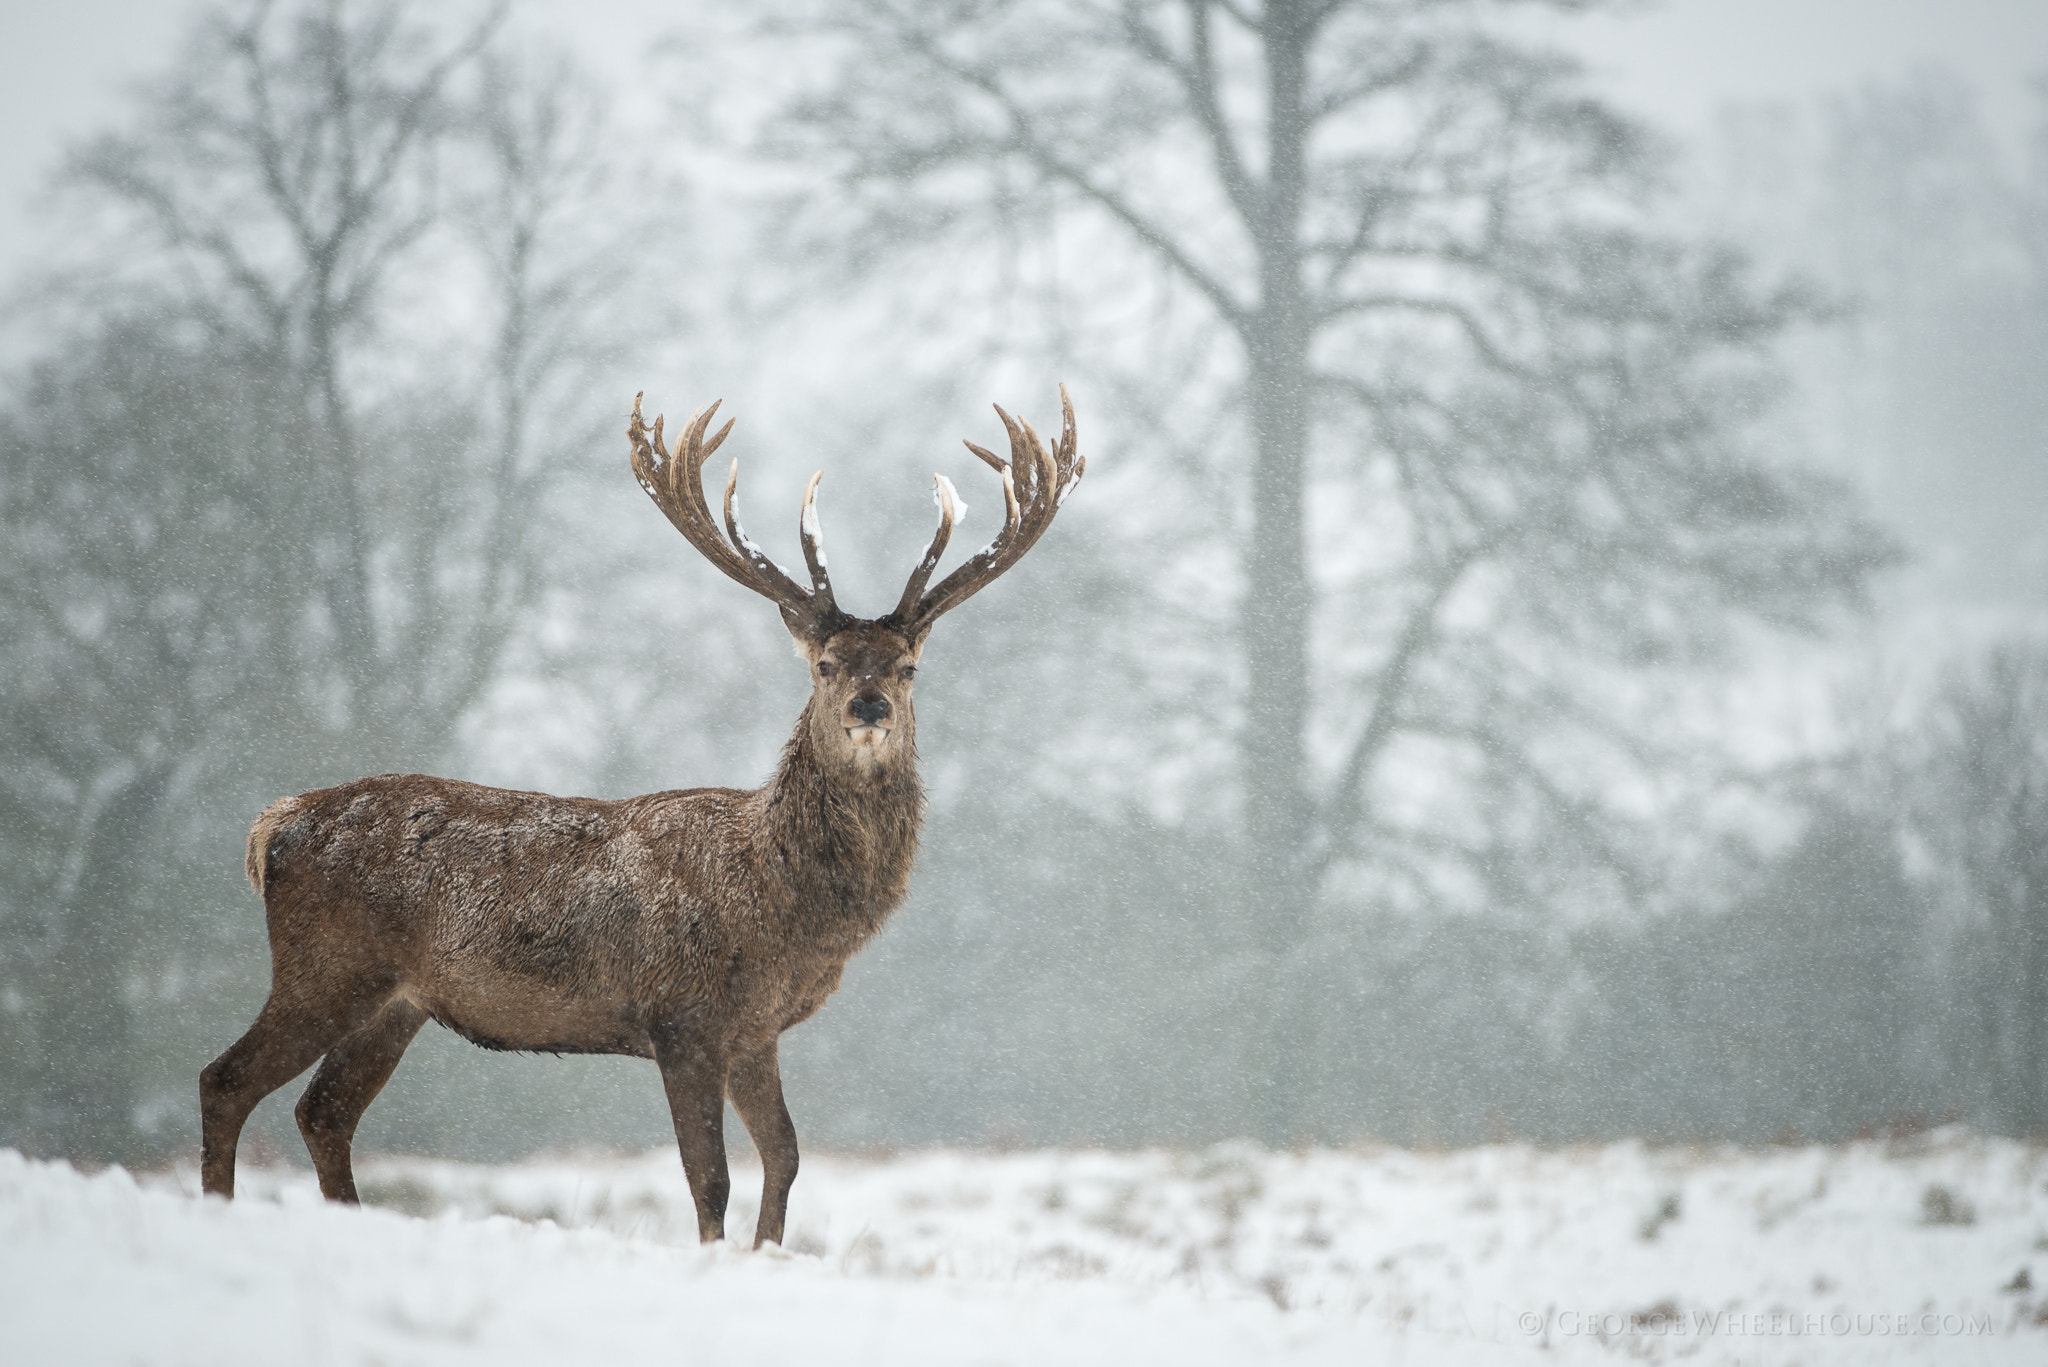 Photograph Red Deer in Snow by George Wheelhouse on 500px